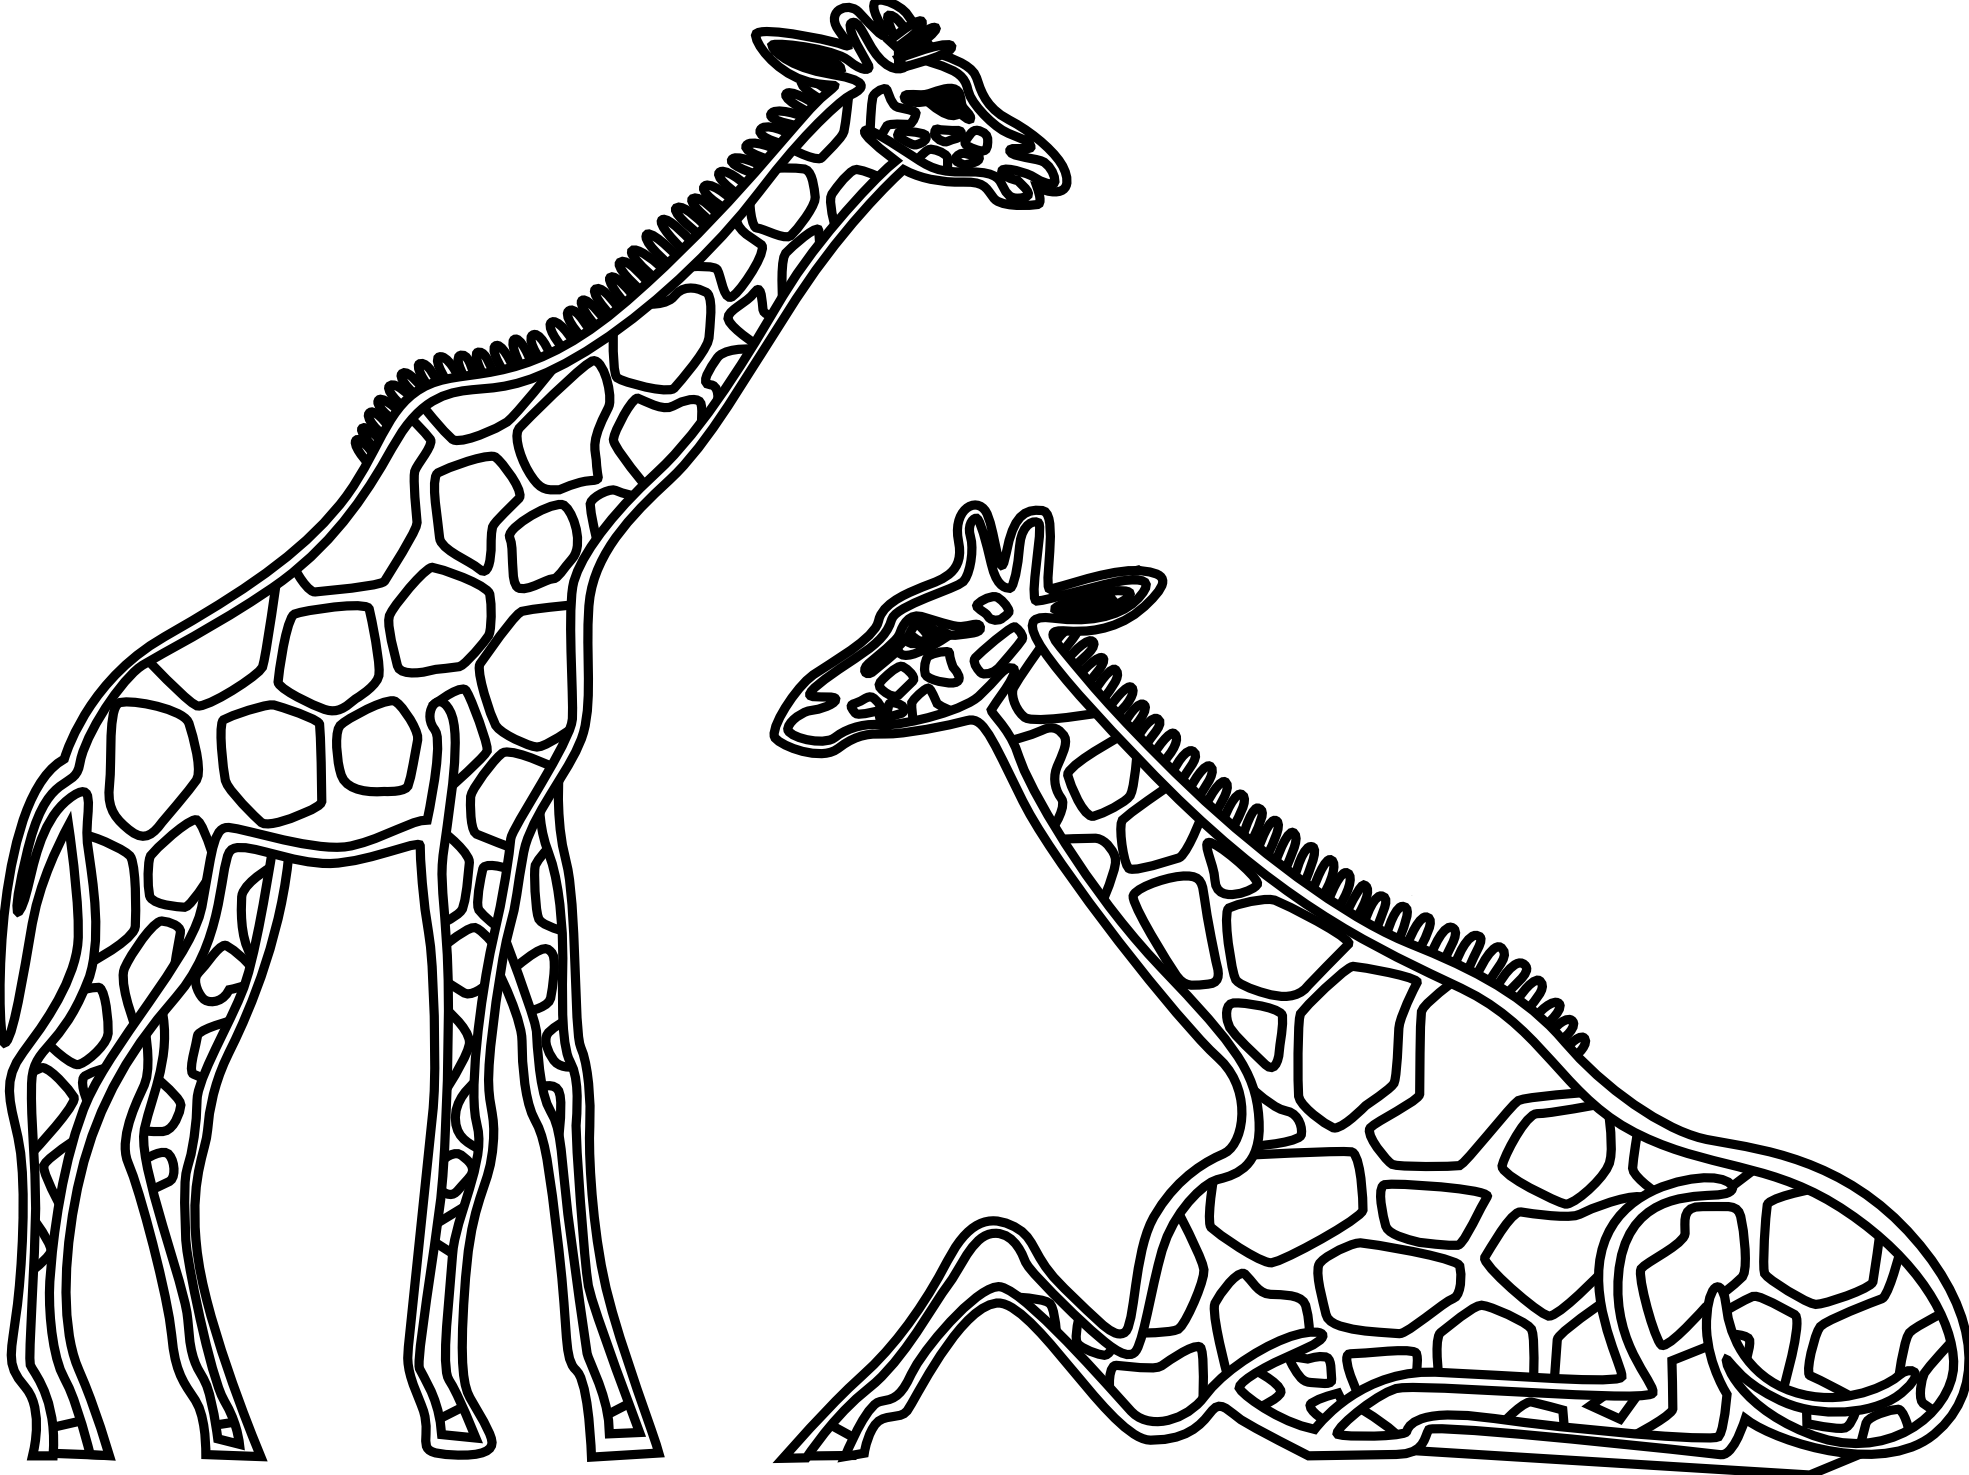 Giraffe clipart terrestrial animal. Line drawing google search